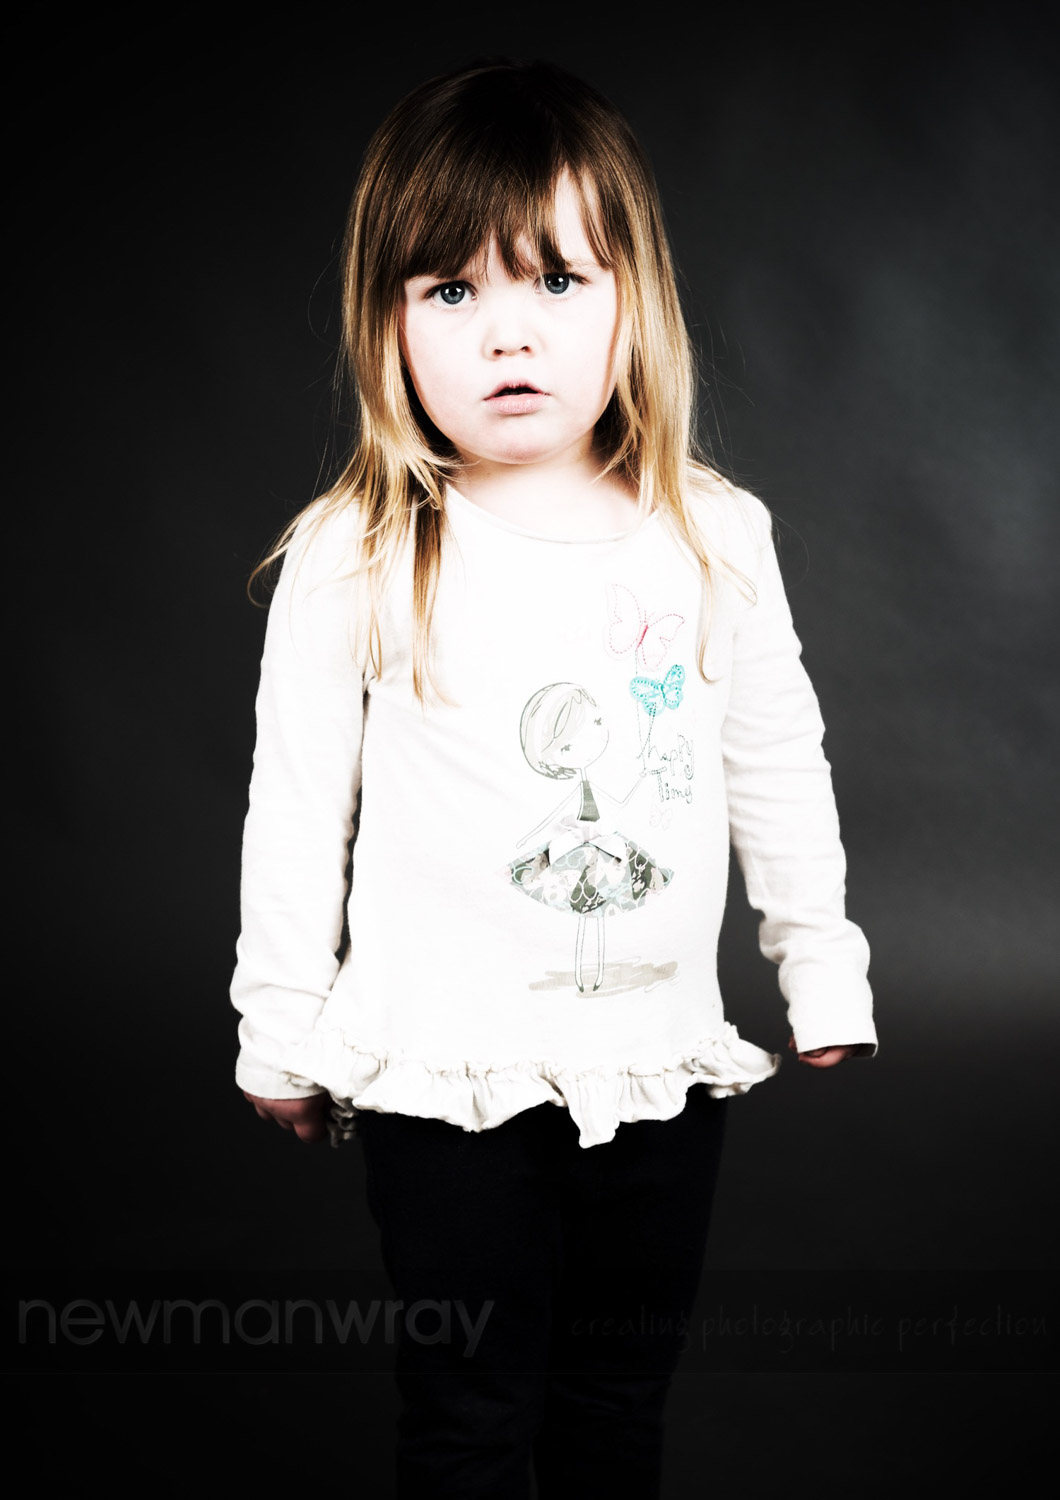 tadcaster_portrait_photography-16